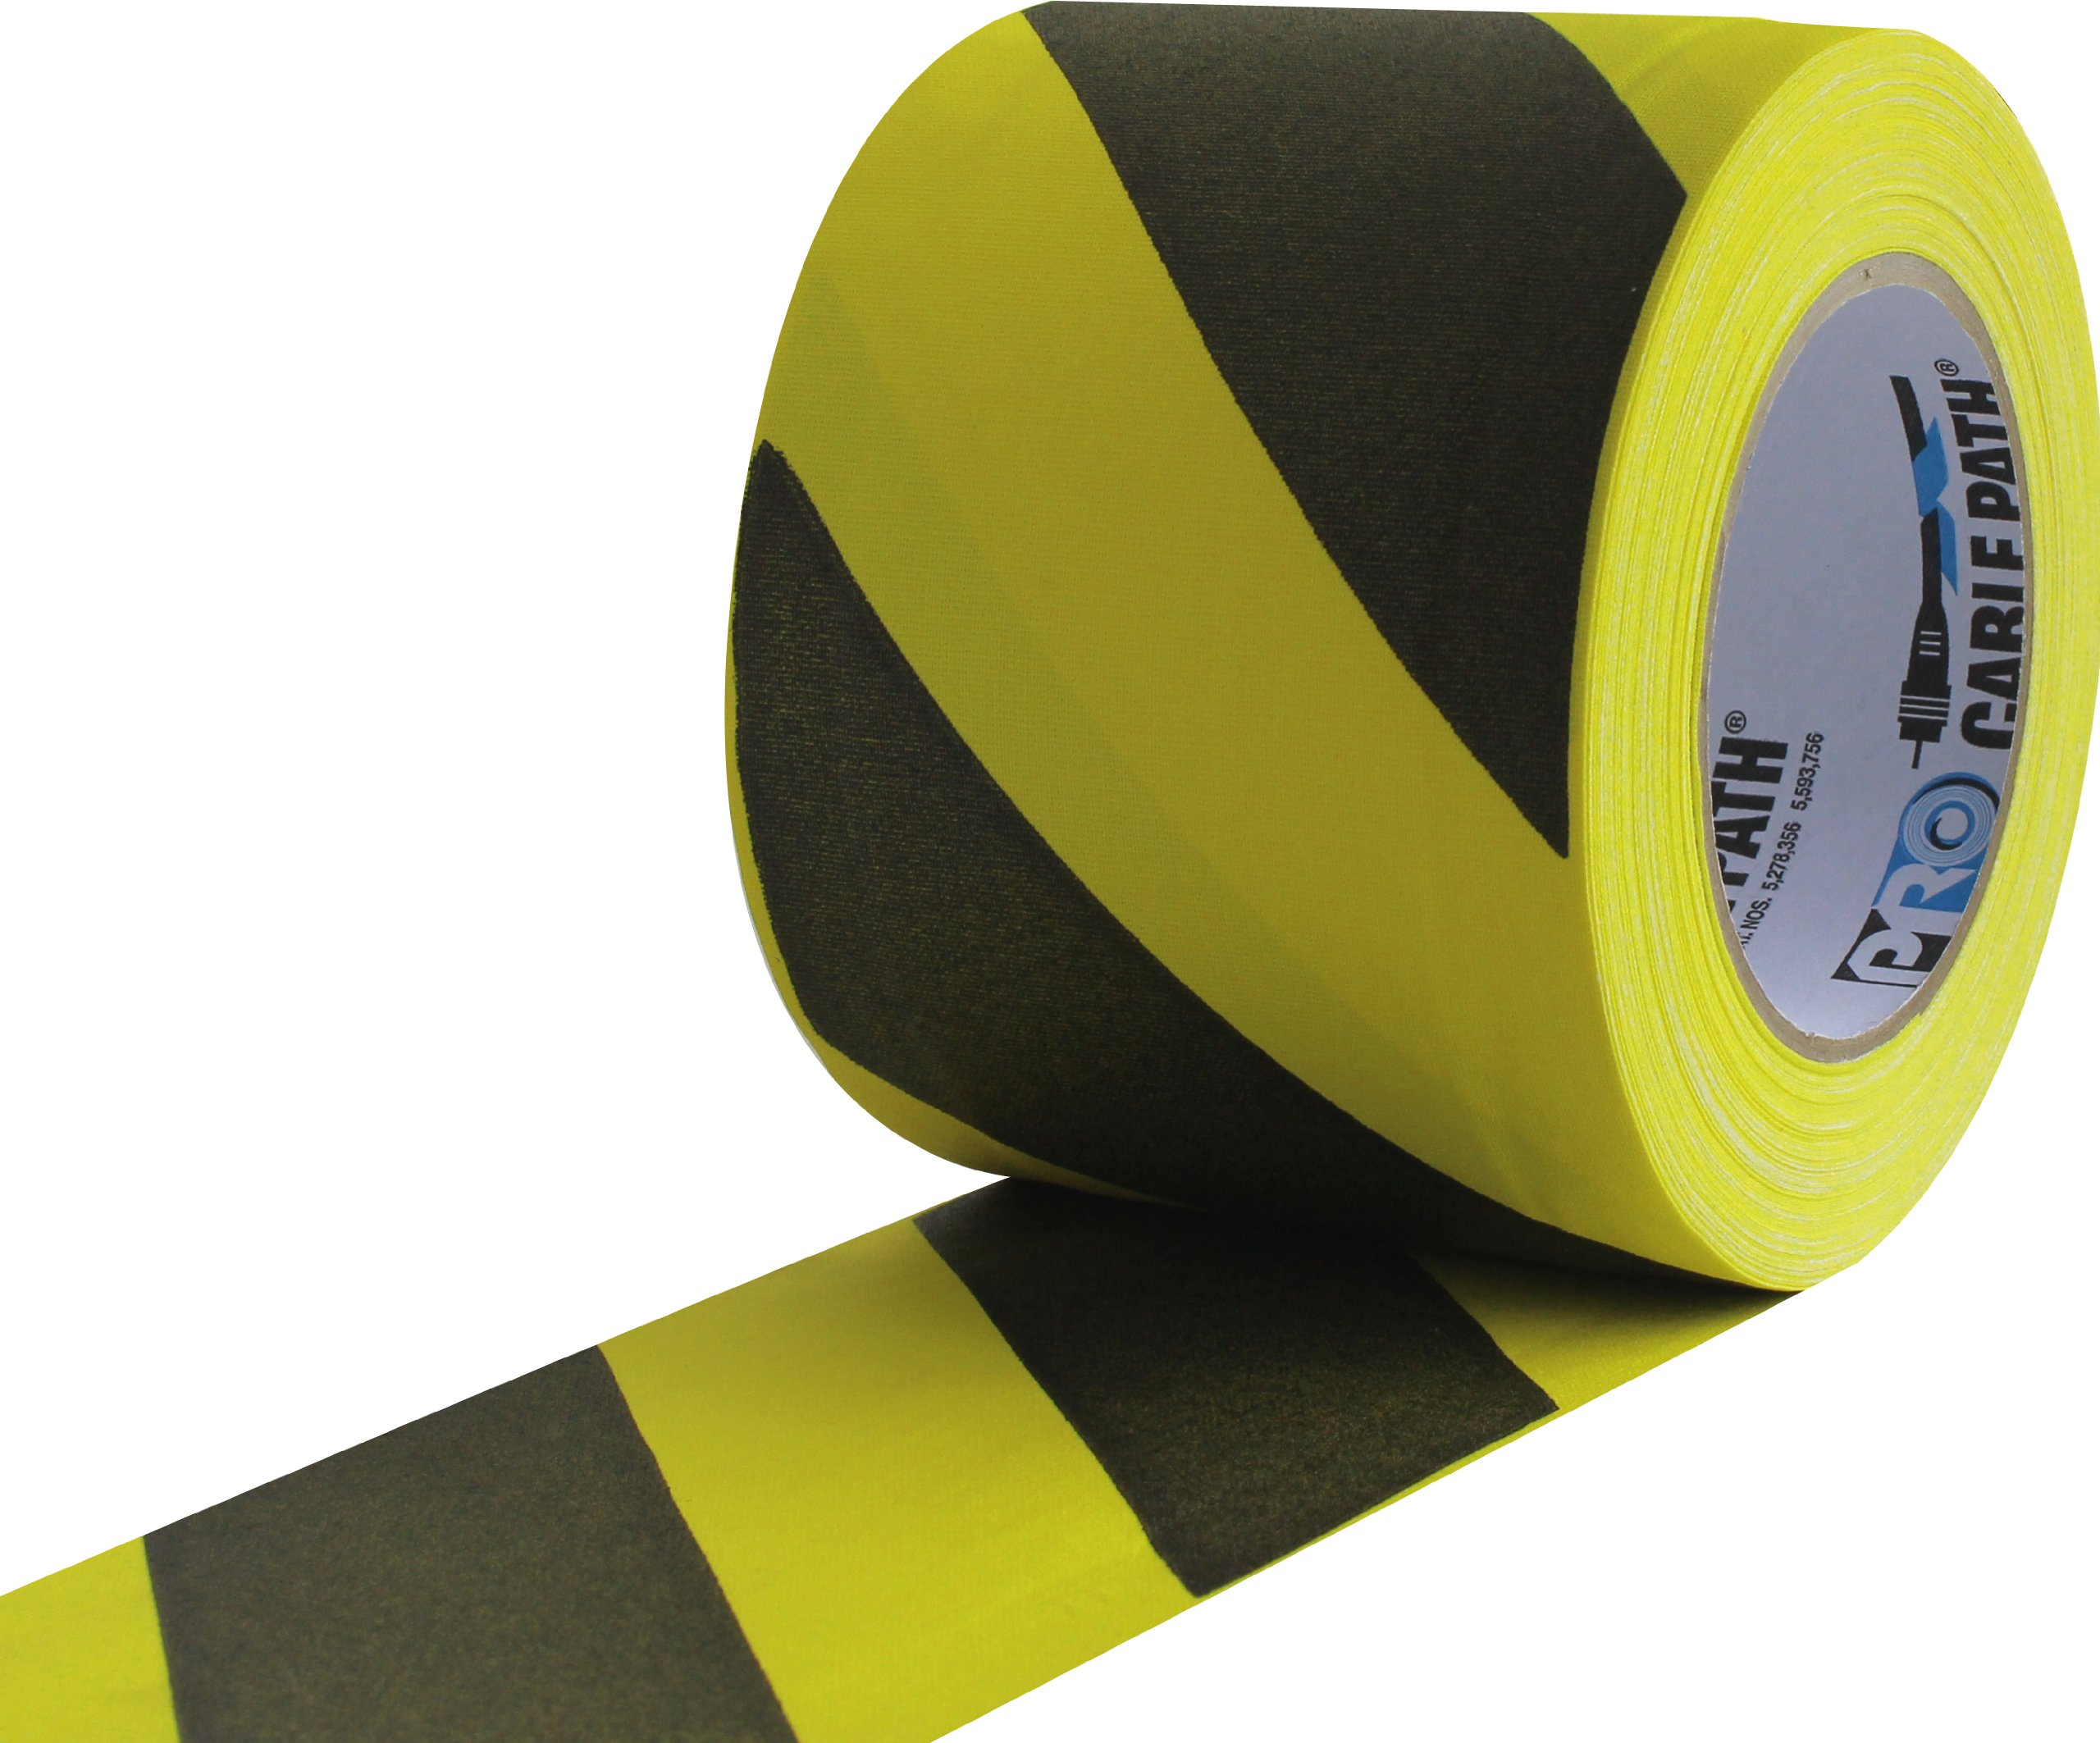 ProTapes Cable Path Cured Rubber Resin Zone Coated Gaffers Tape, 12.5 mil Thick, 30 yds Length, 4'' Width, Black/Yellow Stripes (Pack of 12)